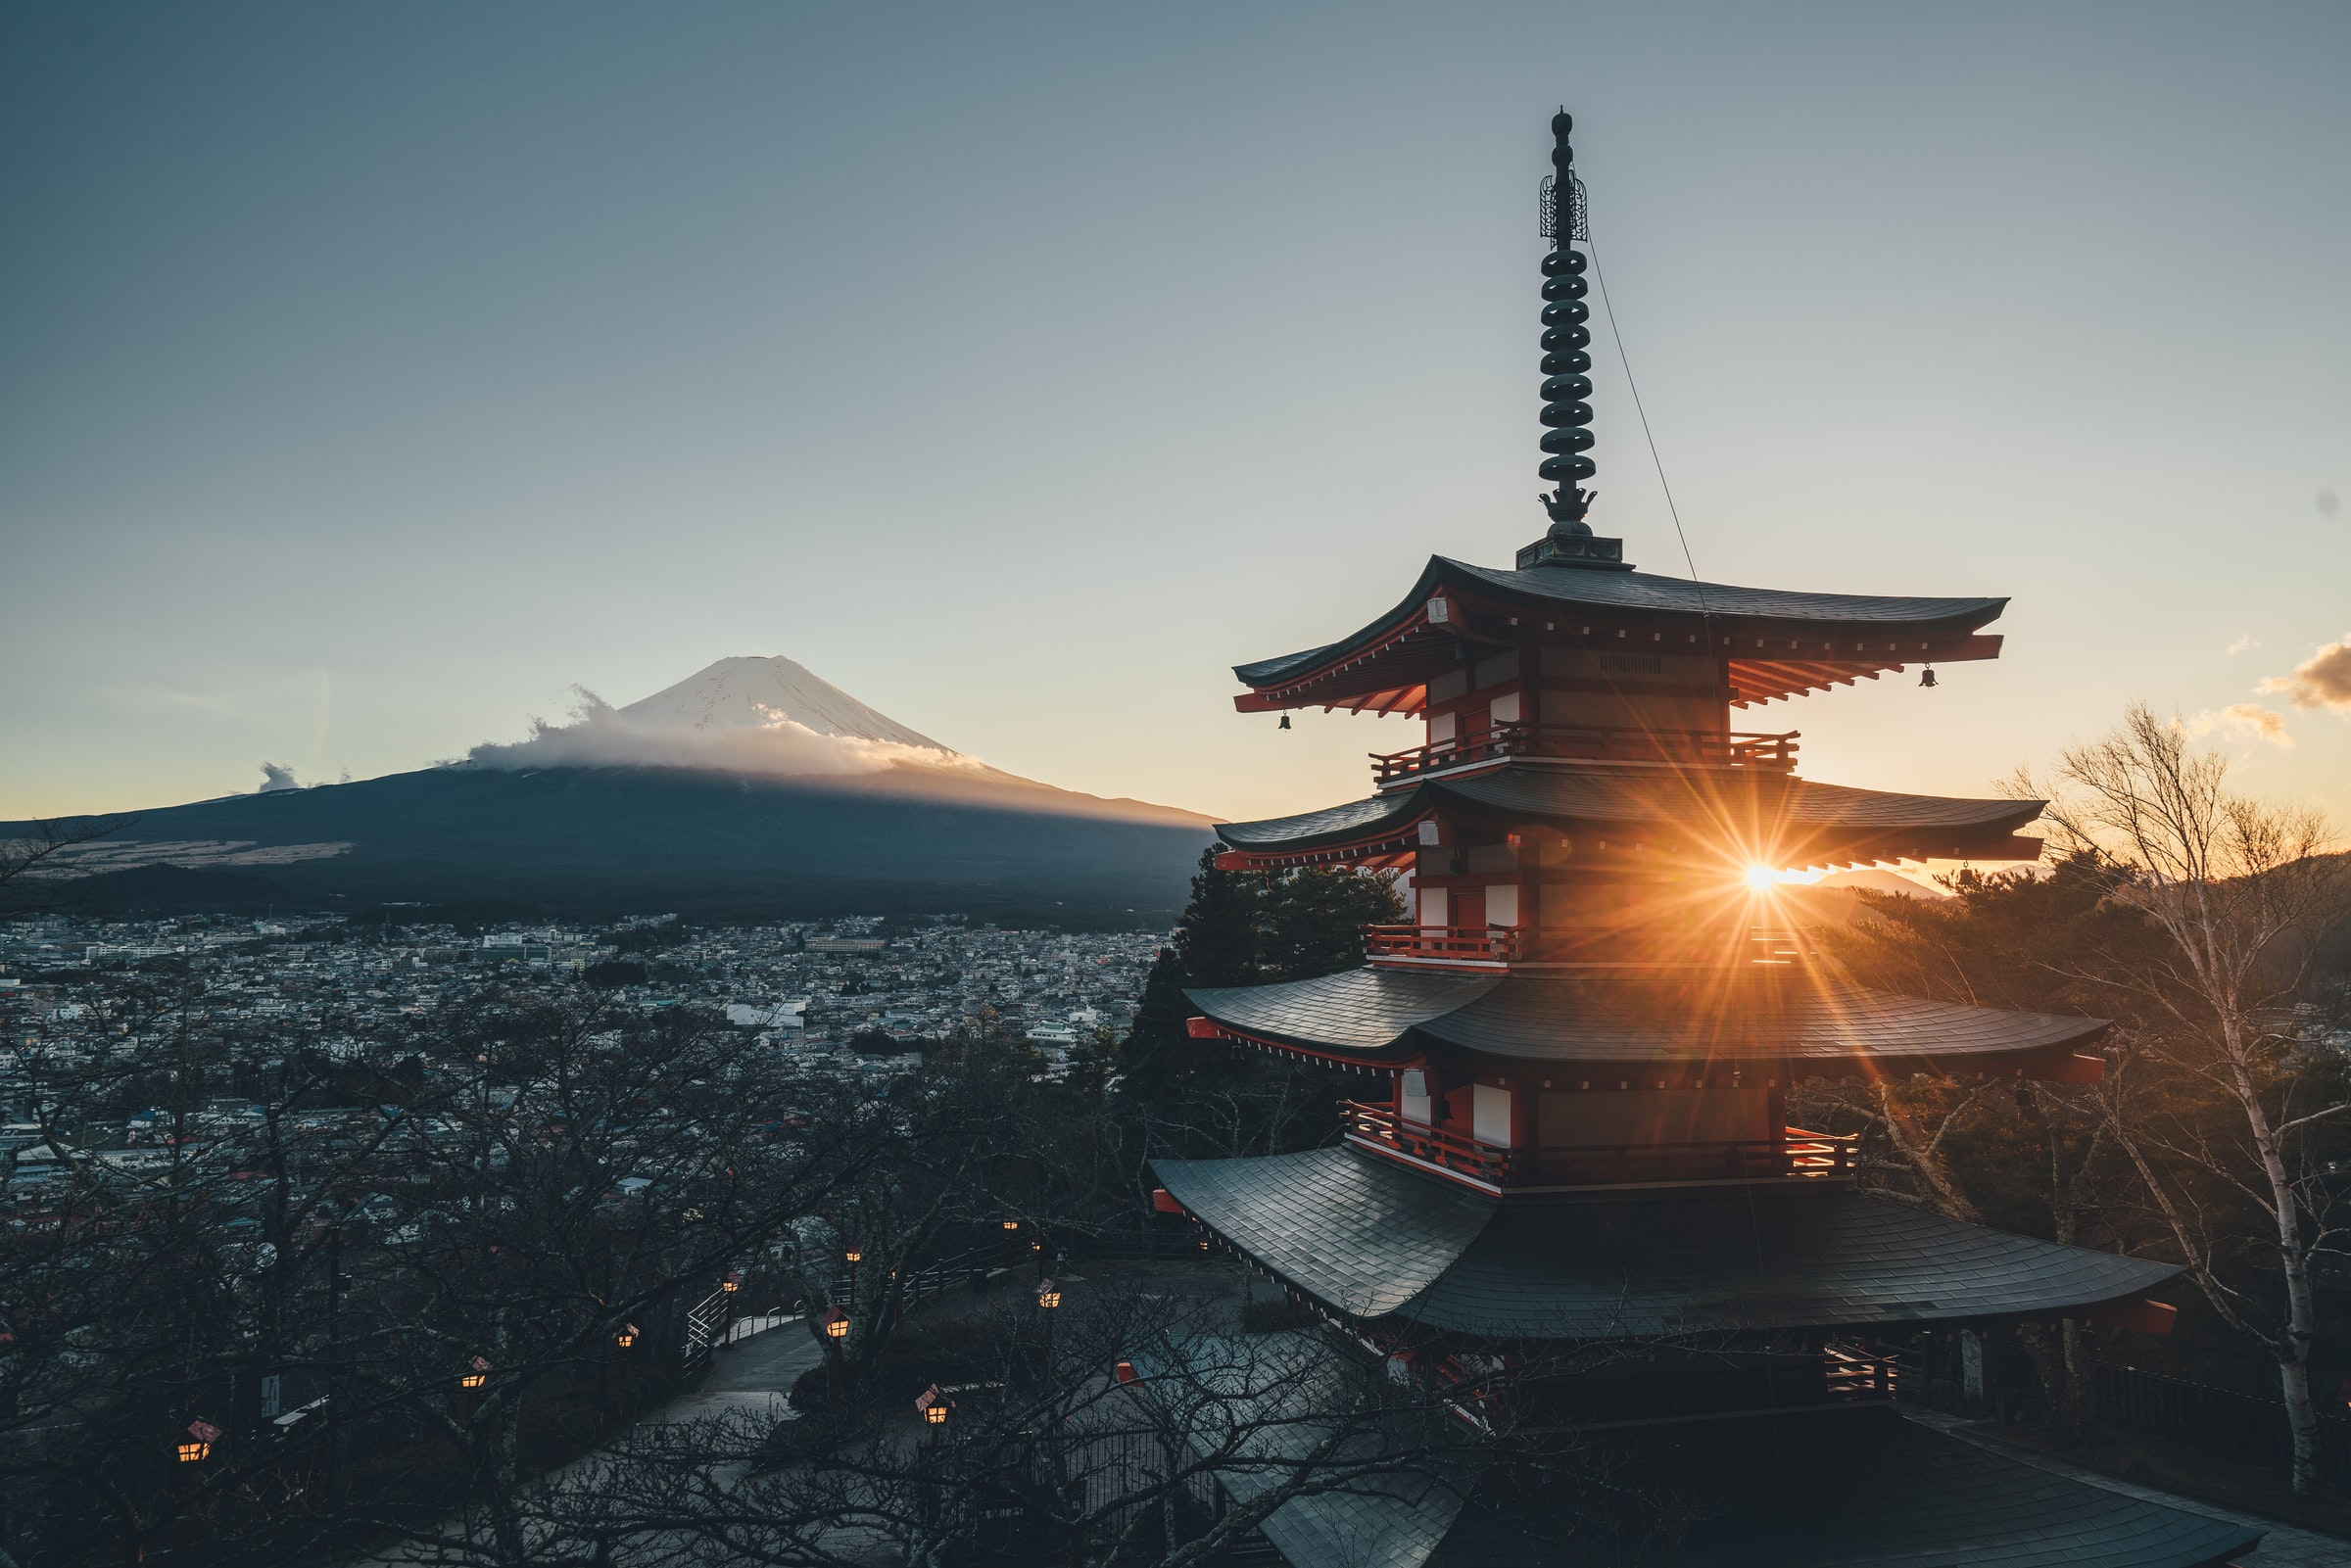 Japan sets new internet record with 319Tb/s data transfer speed